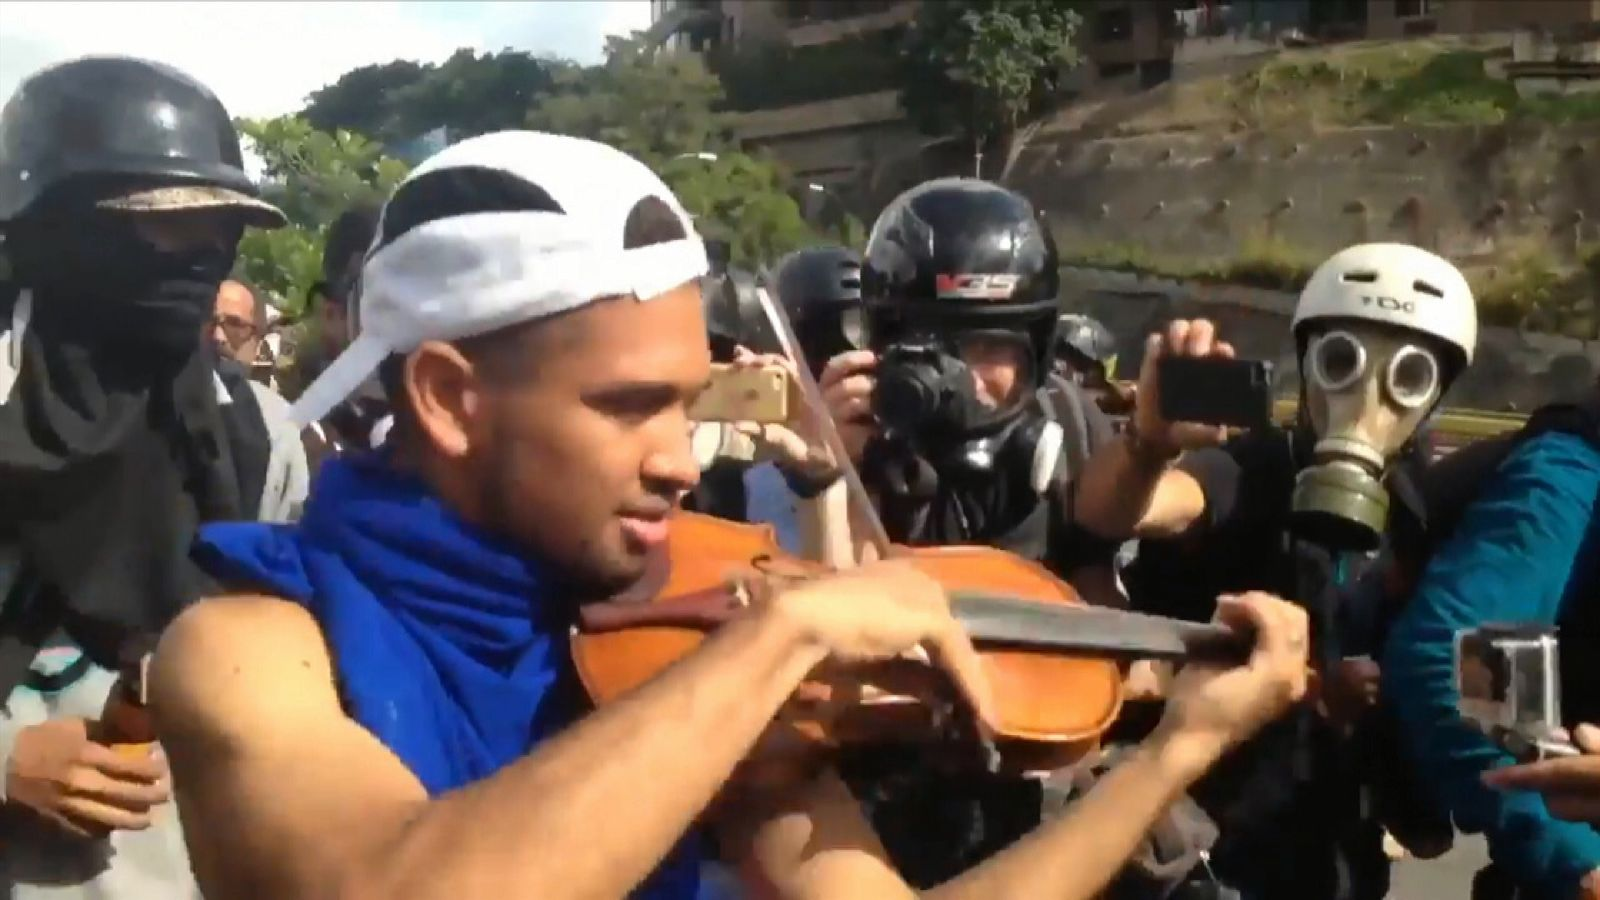 Protester plays violin amid anti-government march in Venezuela